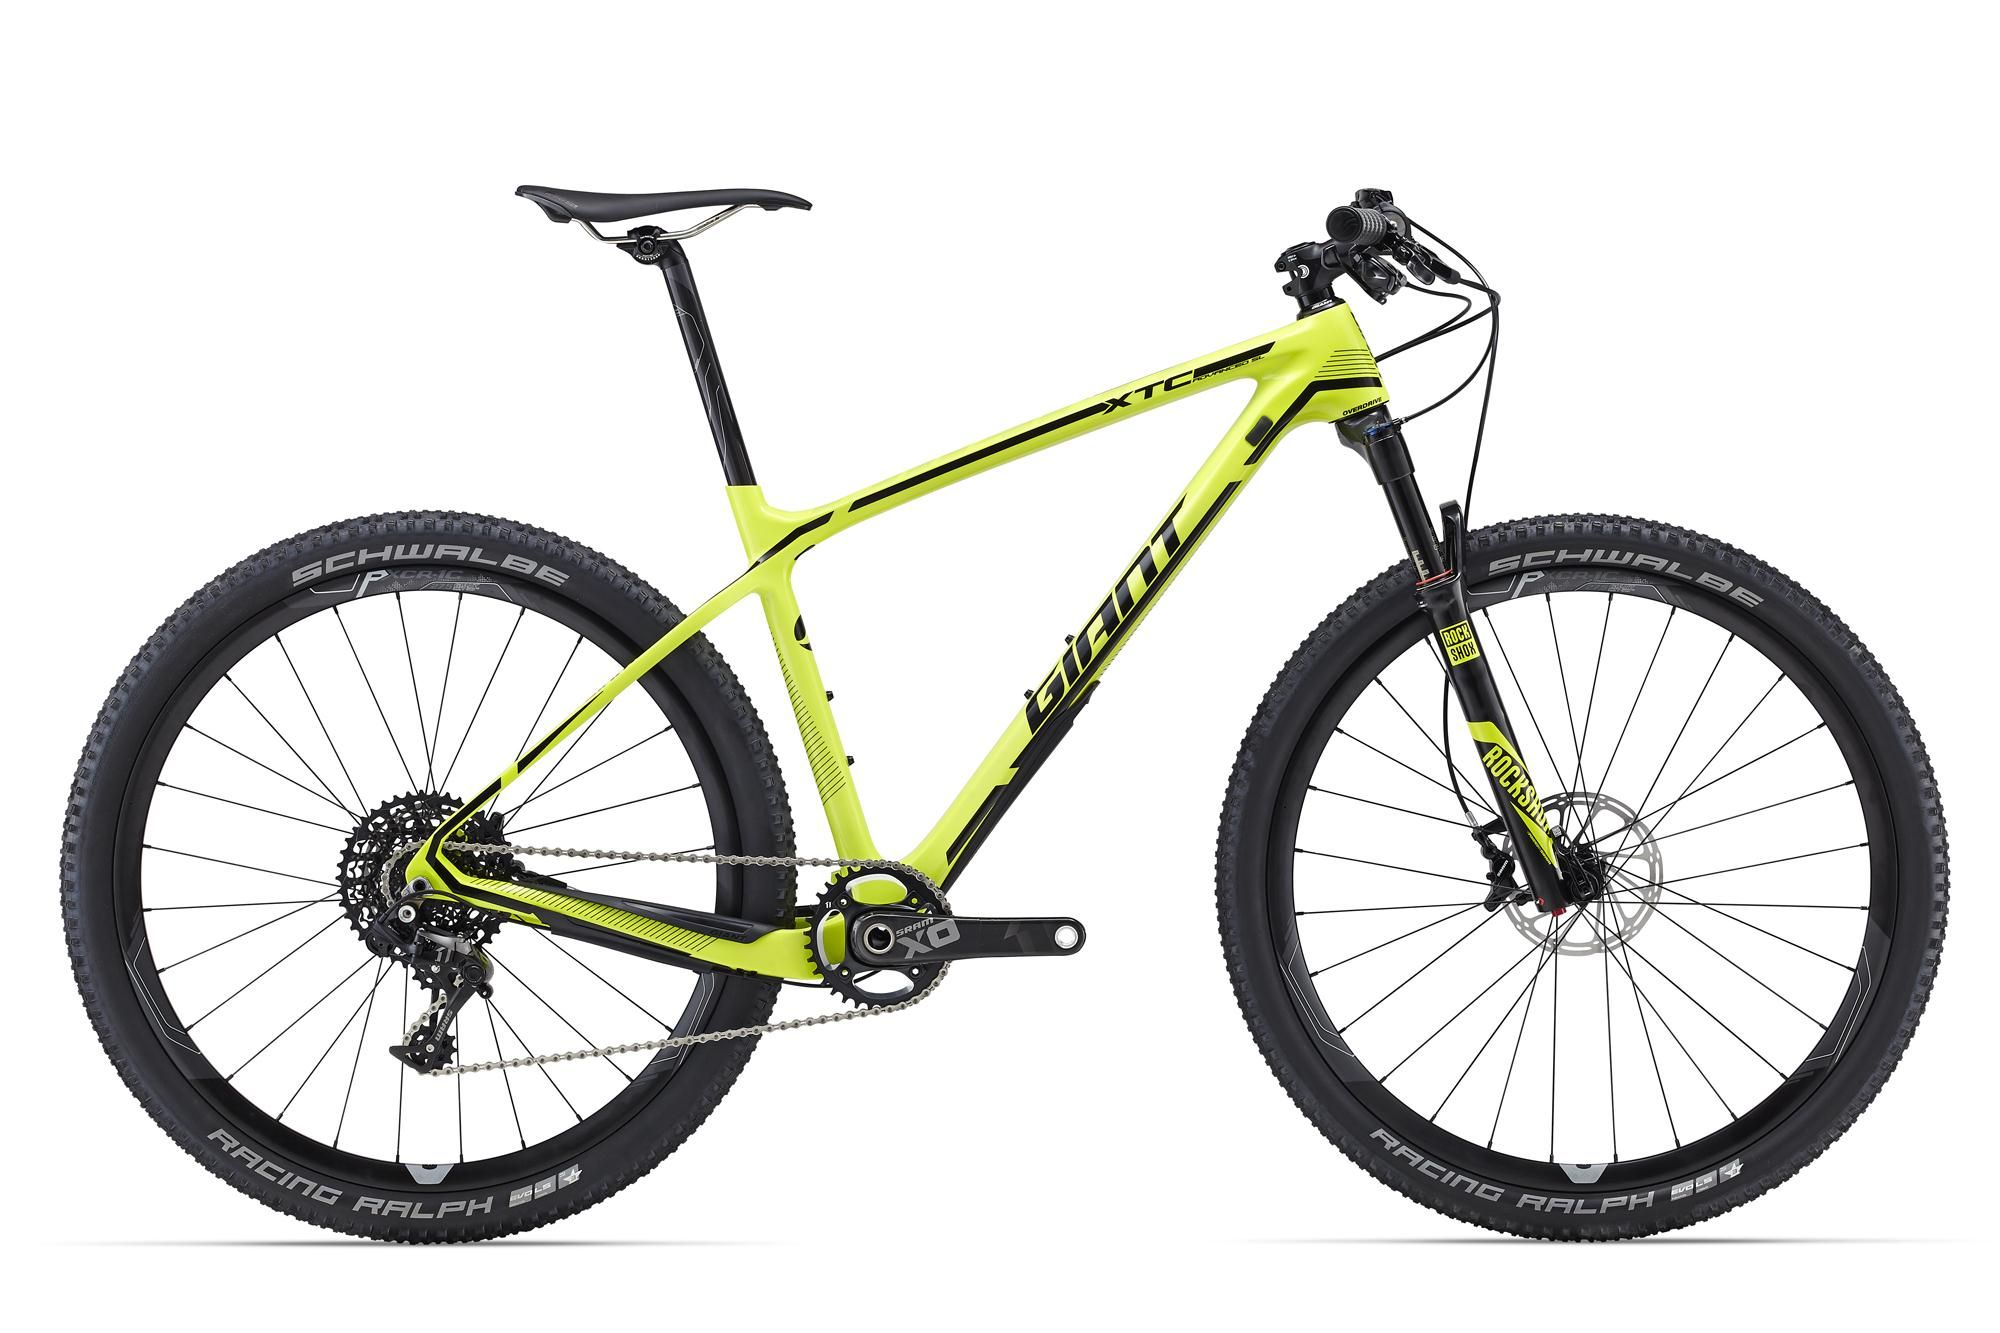 Велосипед Giant XtC Advanced SL 27.5 1 2016 велосипед giant xtc composite 1 2013